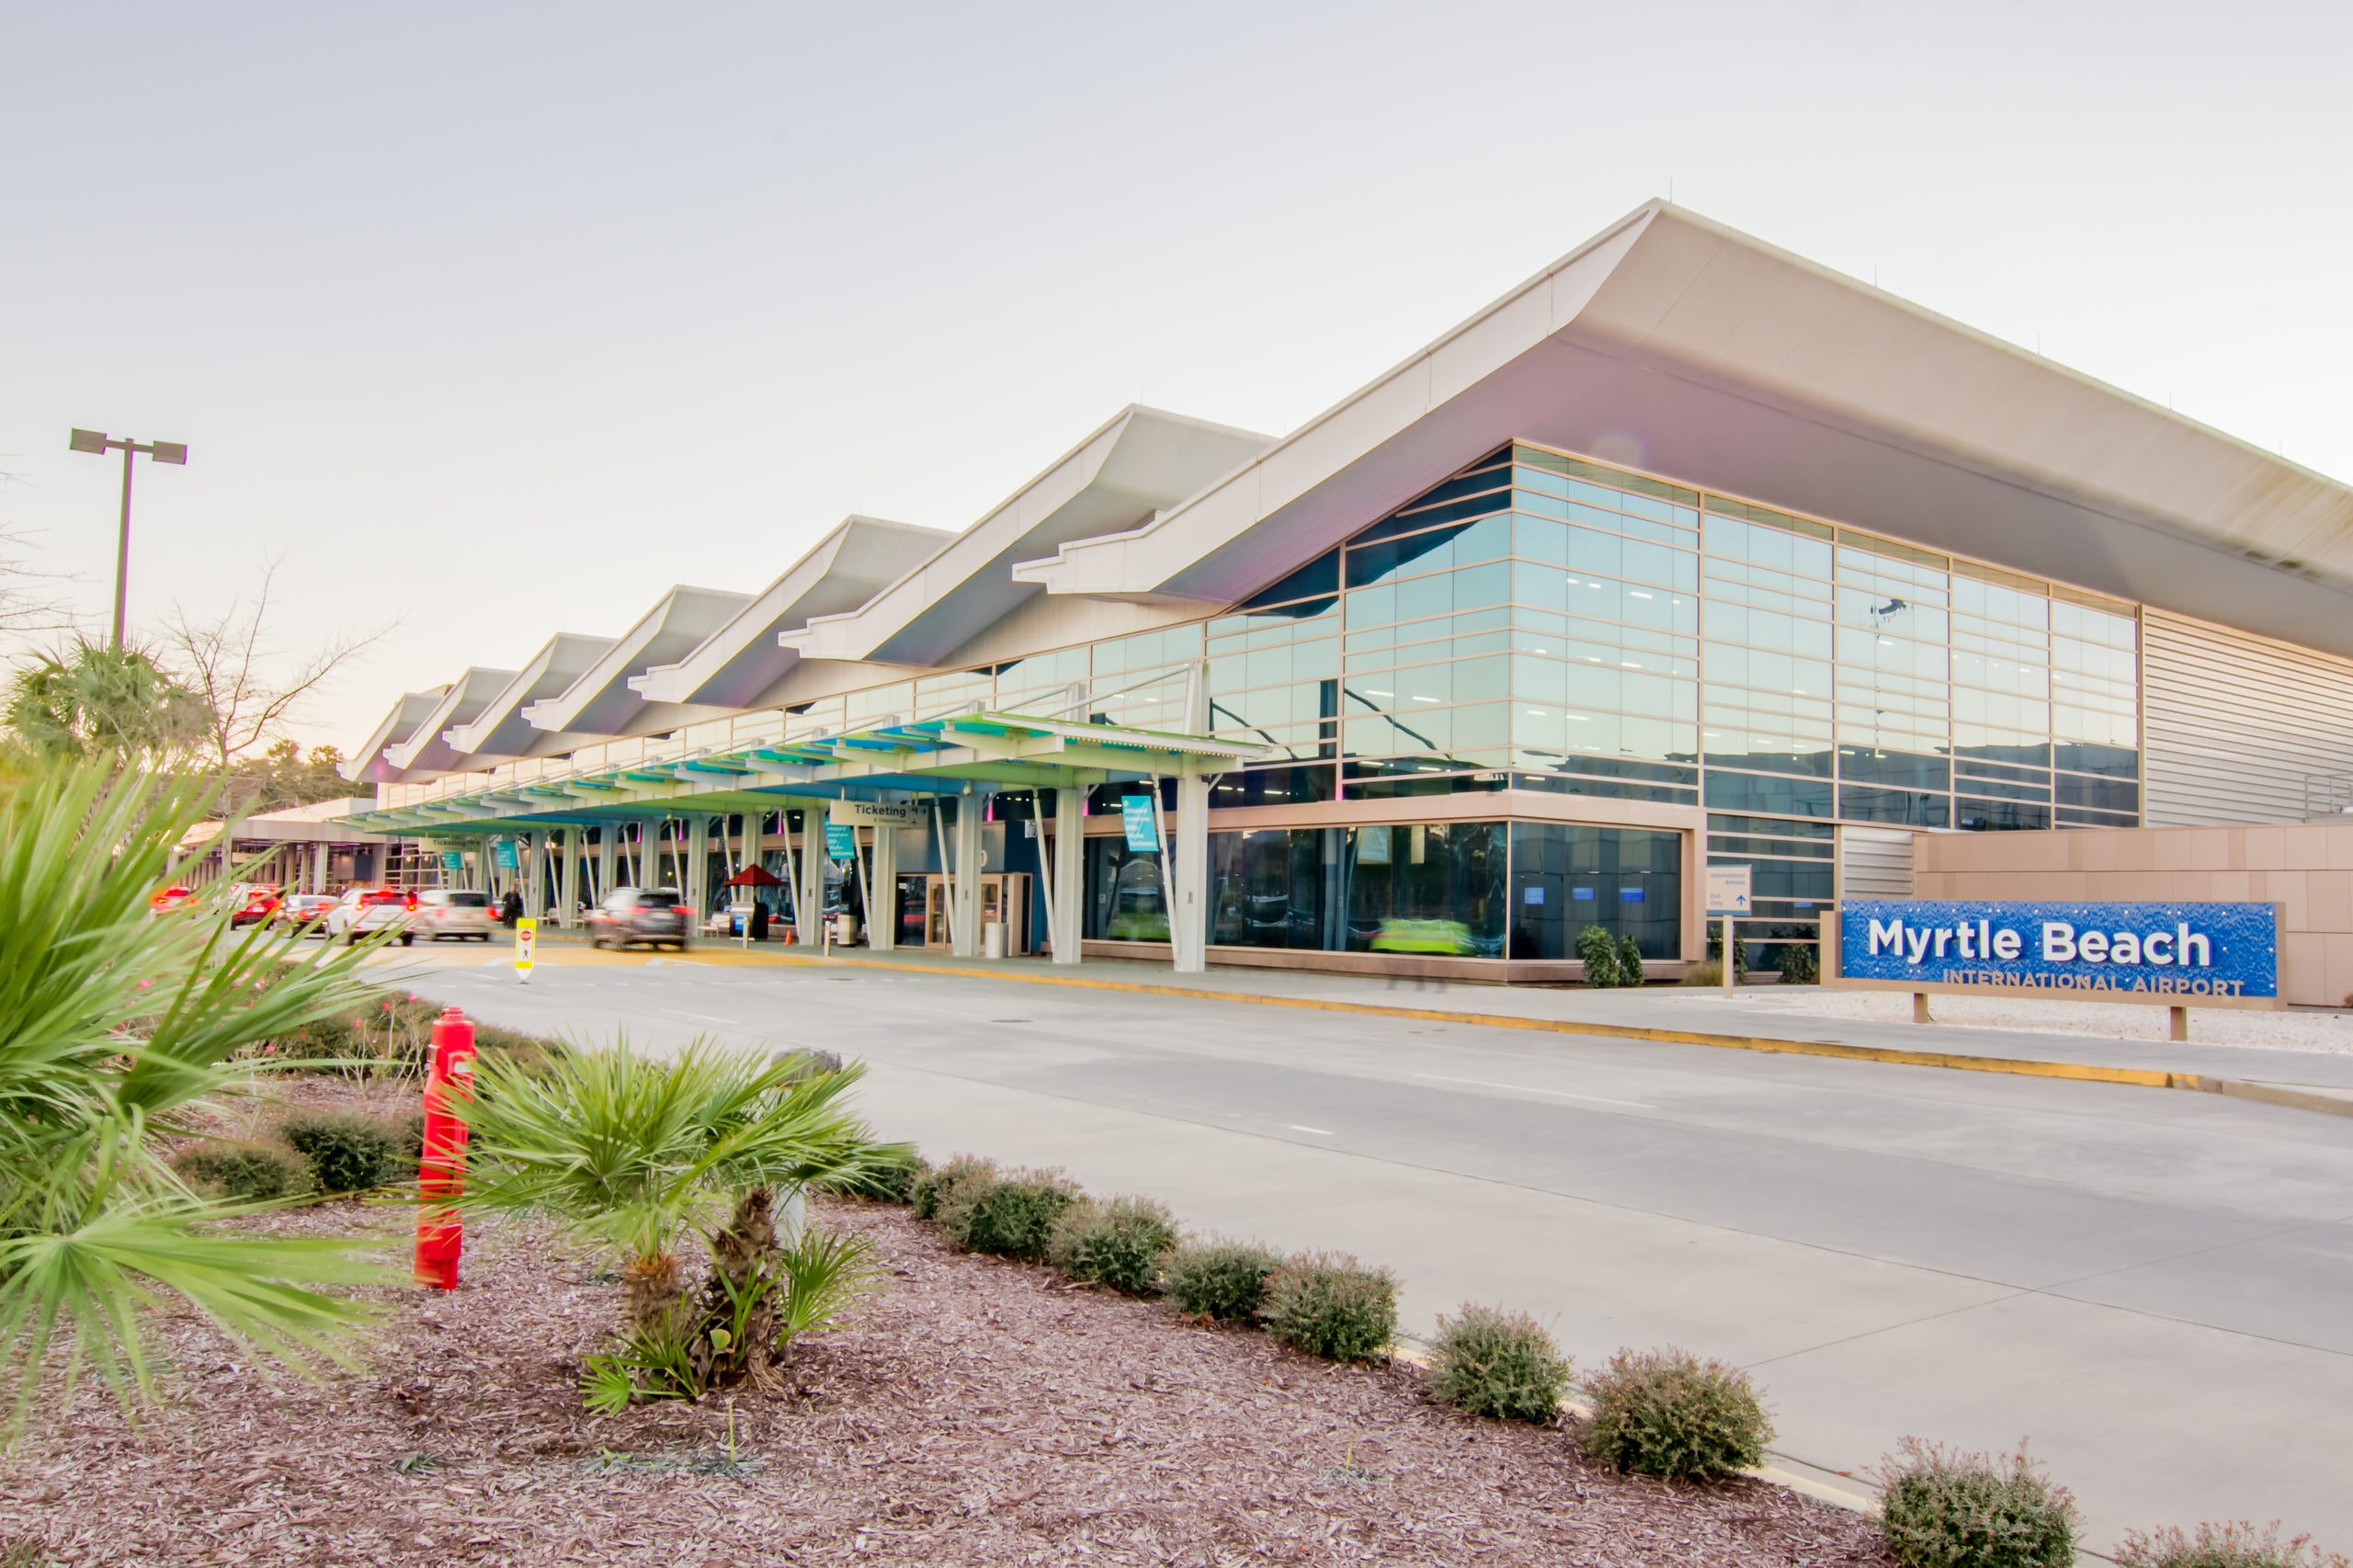 <strong>1. Myrtle Beach International Airport</strong> (Myrtle Beach, South Carolina). Myrtle Beach International Airport ranks among the fastest growing airports in the state. Passengers fly in and out on eight different airlines to more than 50 destinations across North America. It wins high marks from passengers for its convenient location and the ease of getting through security and to your gate.